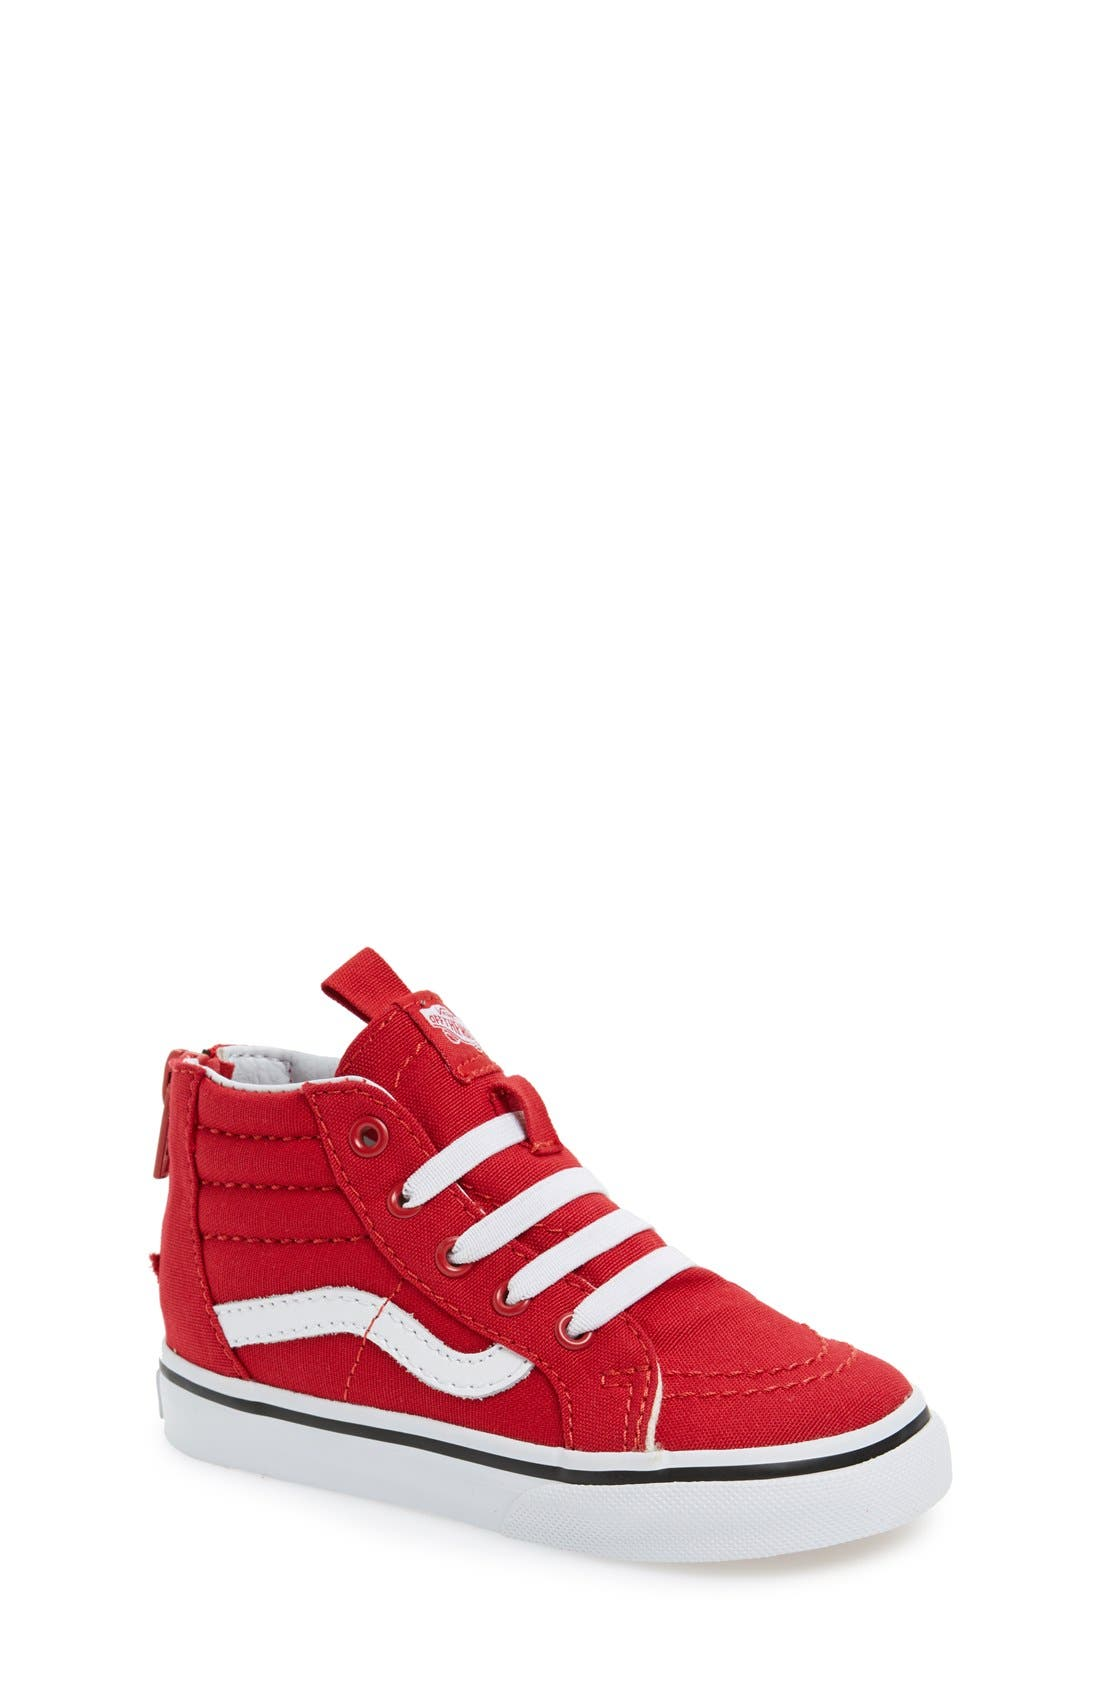 VANS, 'Sk8-Hi' Zip Sneaker, Main thumbnail 1, color, RACING RED/TRUE WHITE